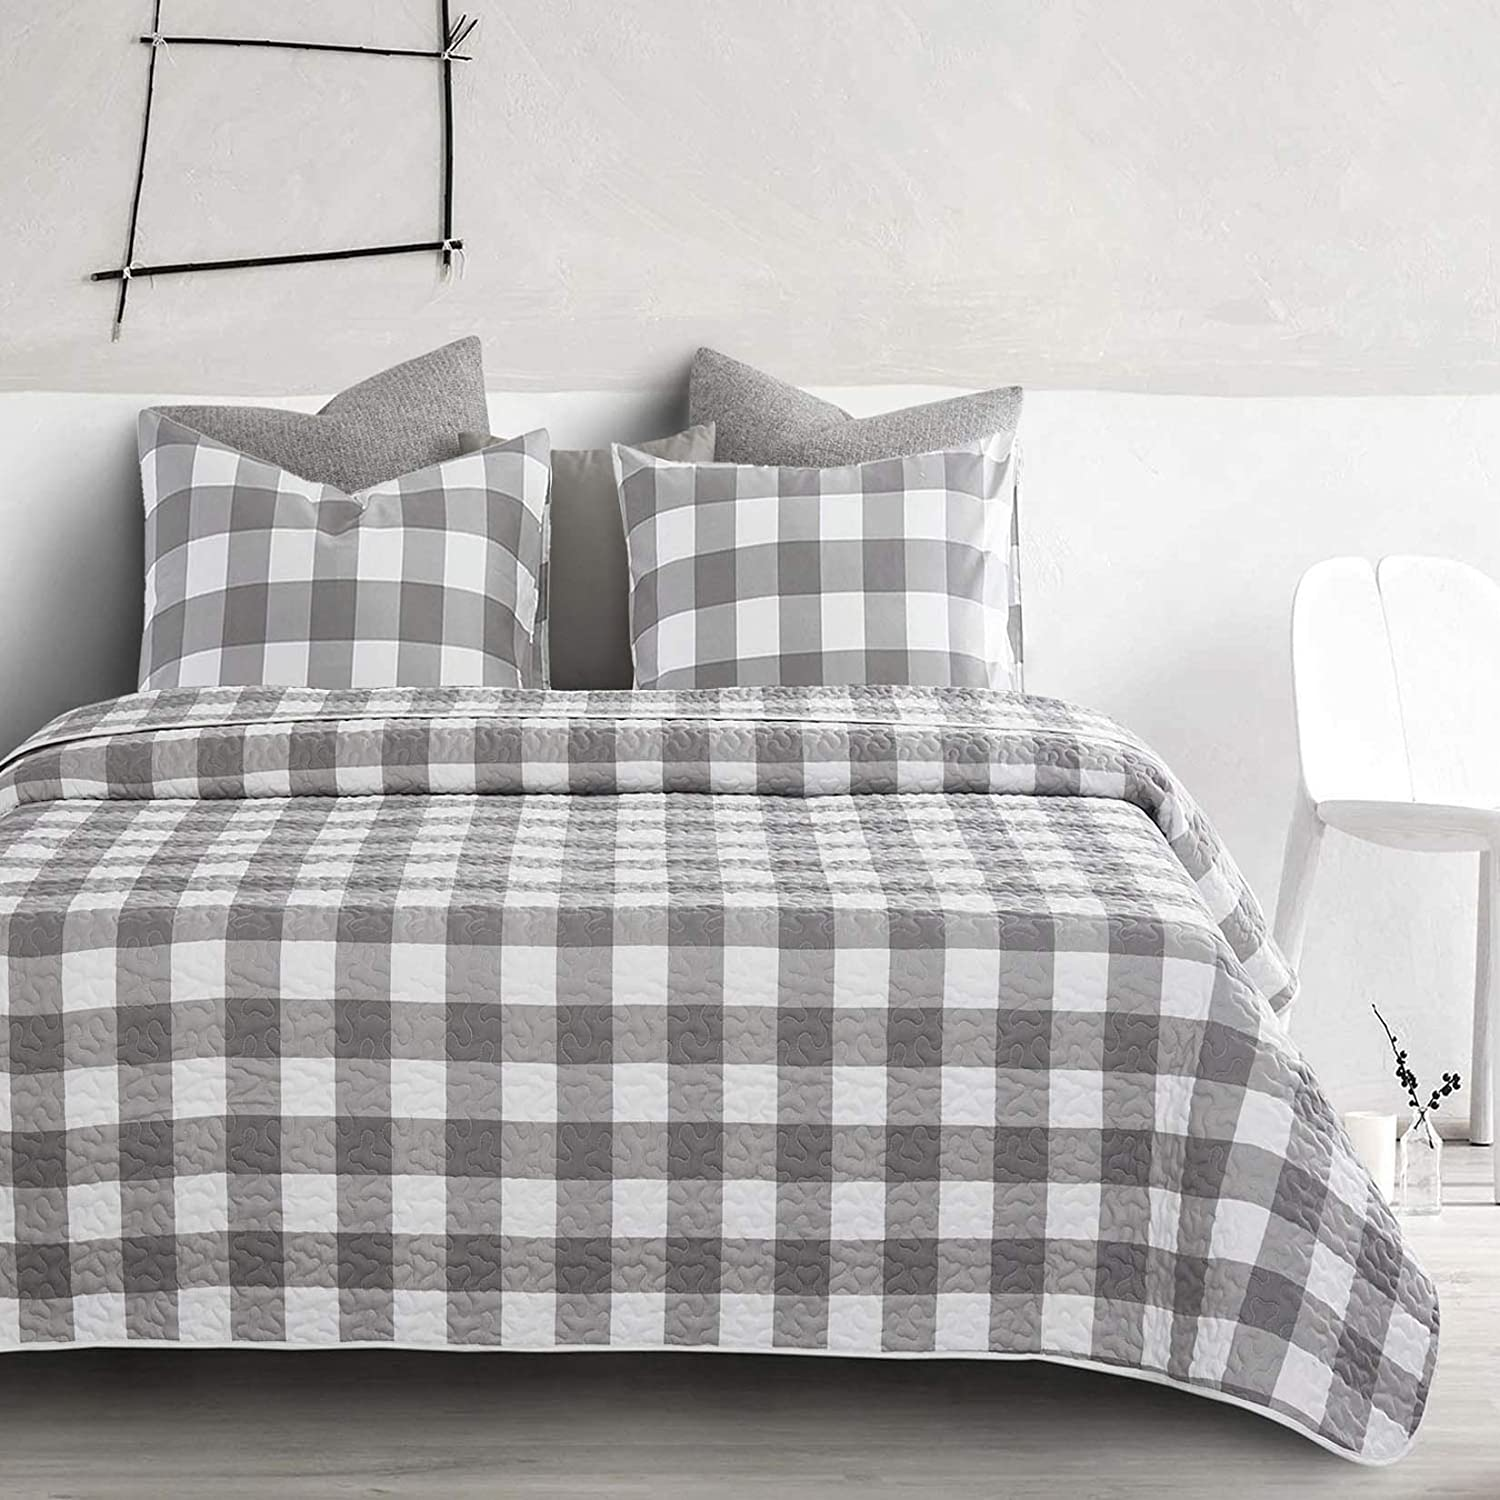 Wake In Cloud - Gray Plaid Quilt Set, Buffalo Check Gingham Geometric Checker Pattern Printed in Grey White, Soft Microfiber Bedspread Coverlet Bedding (3pcs, King Size